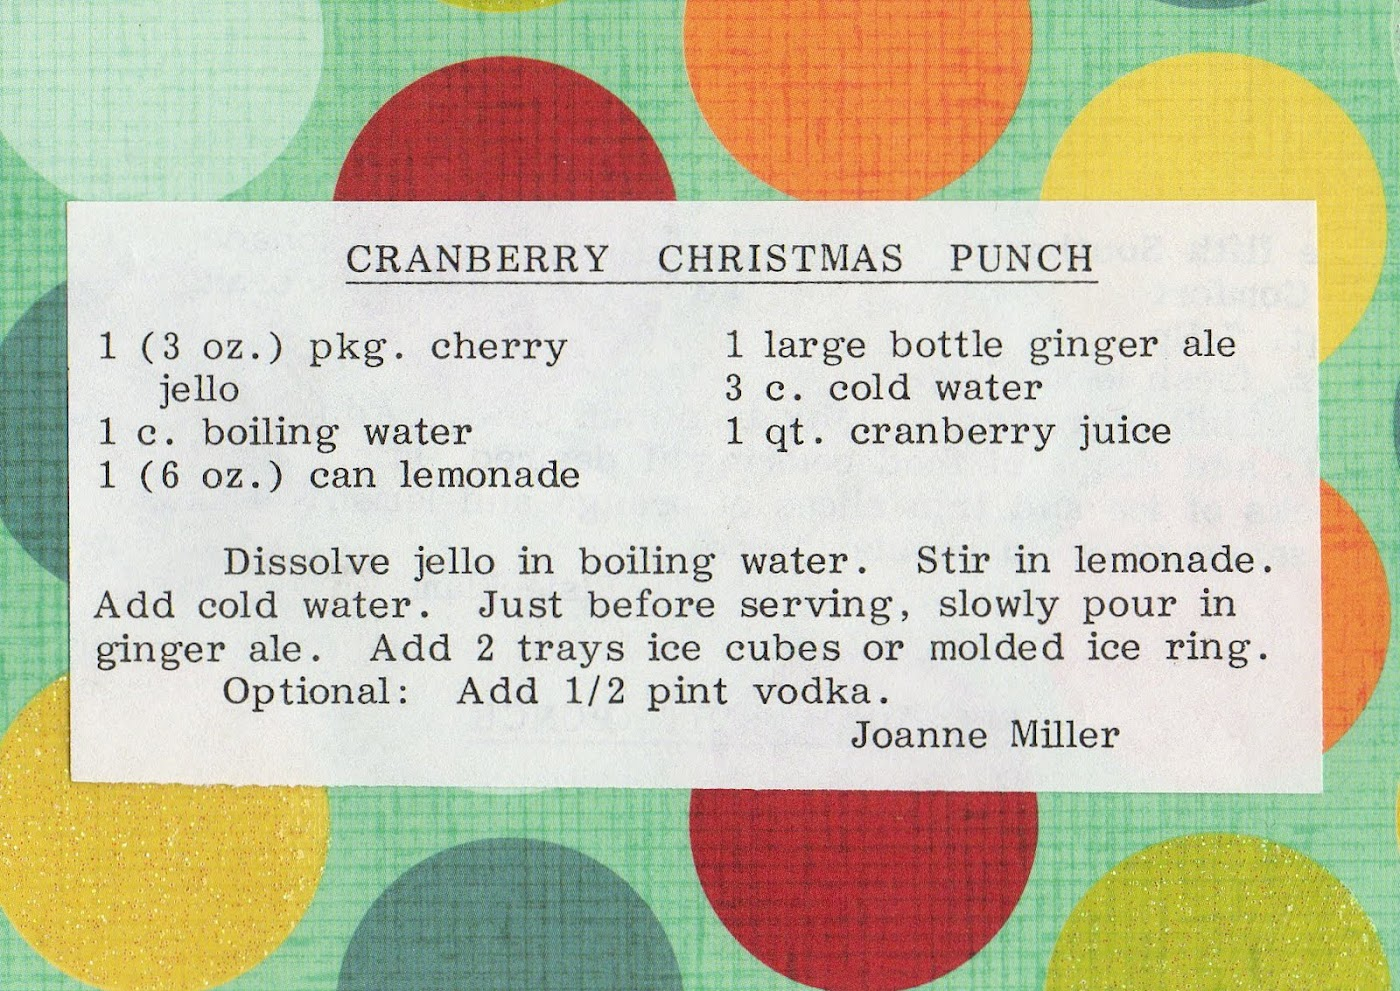 Cranberry Christmas Punch (quick recipe)